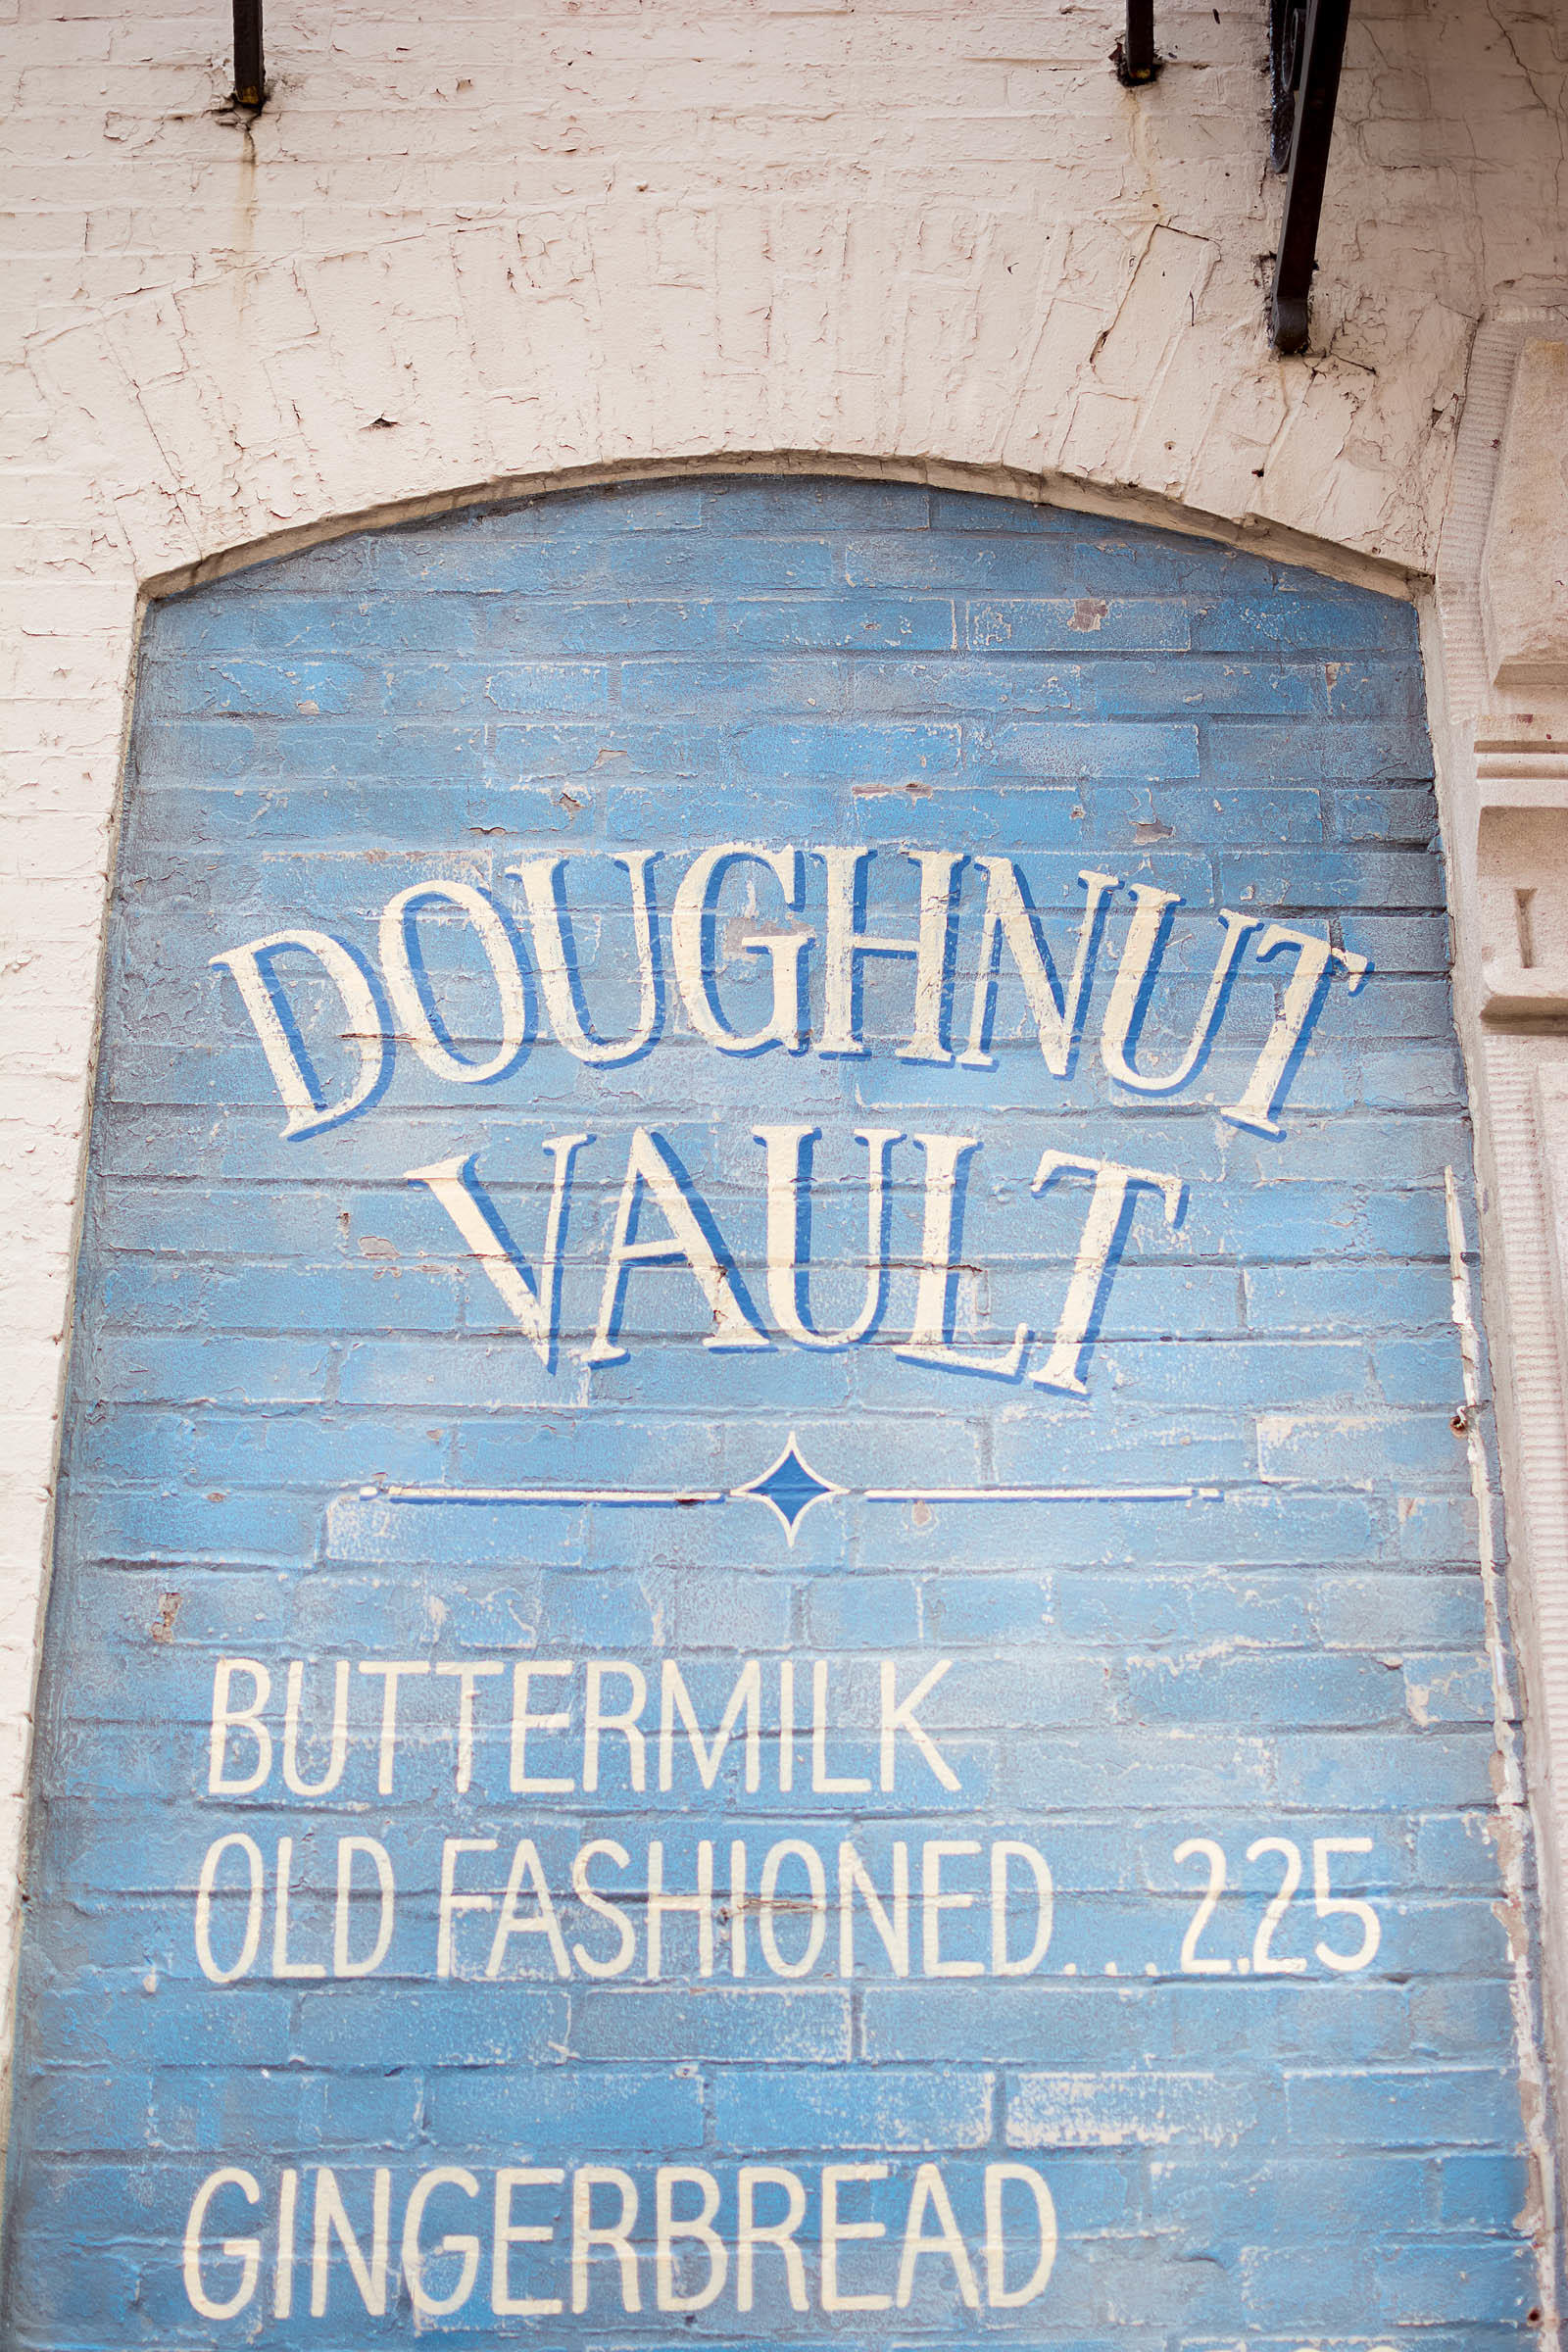 Doughnut Vault Chicago River North Old Fashioned